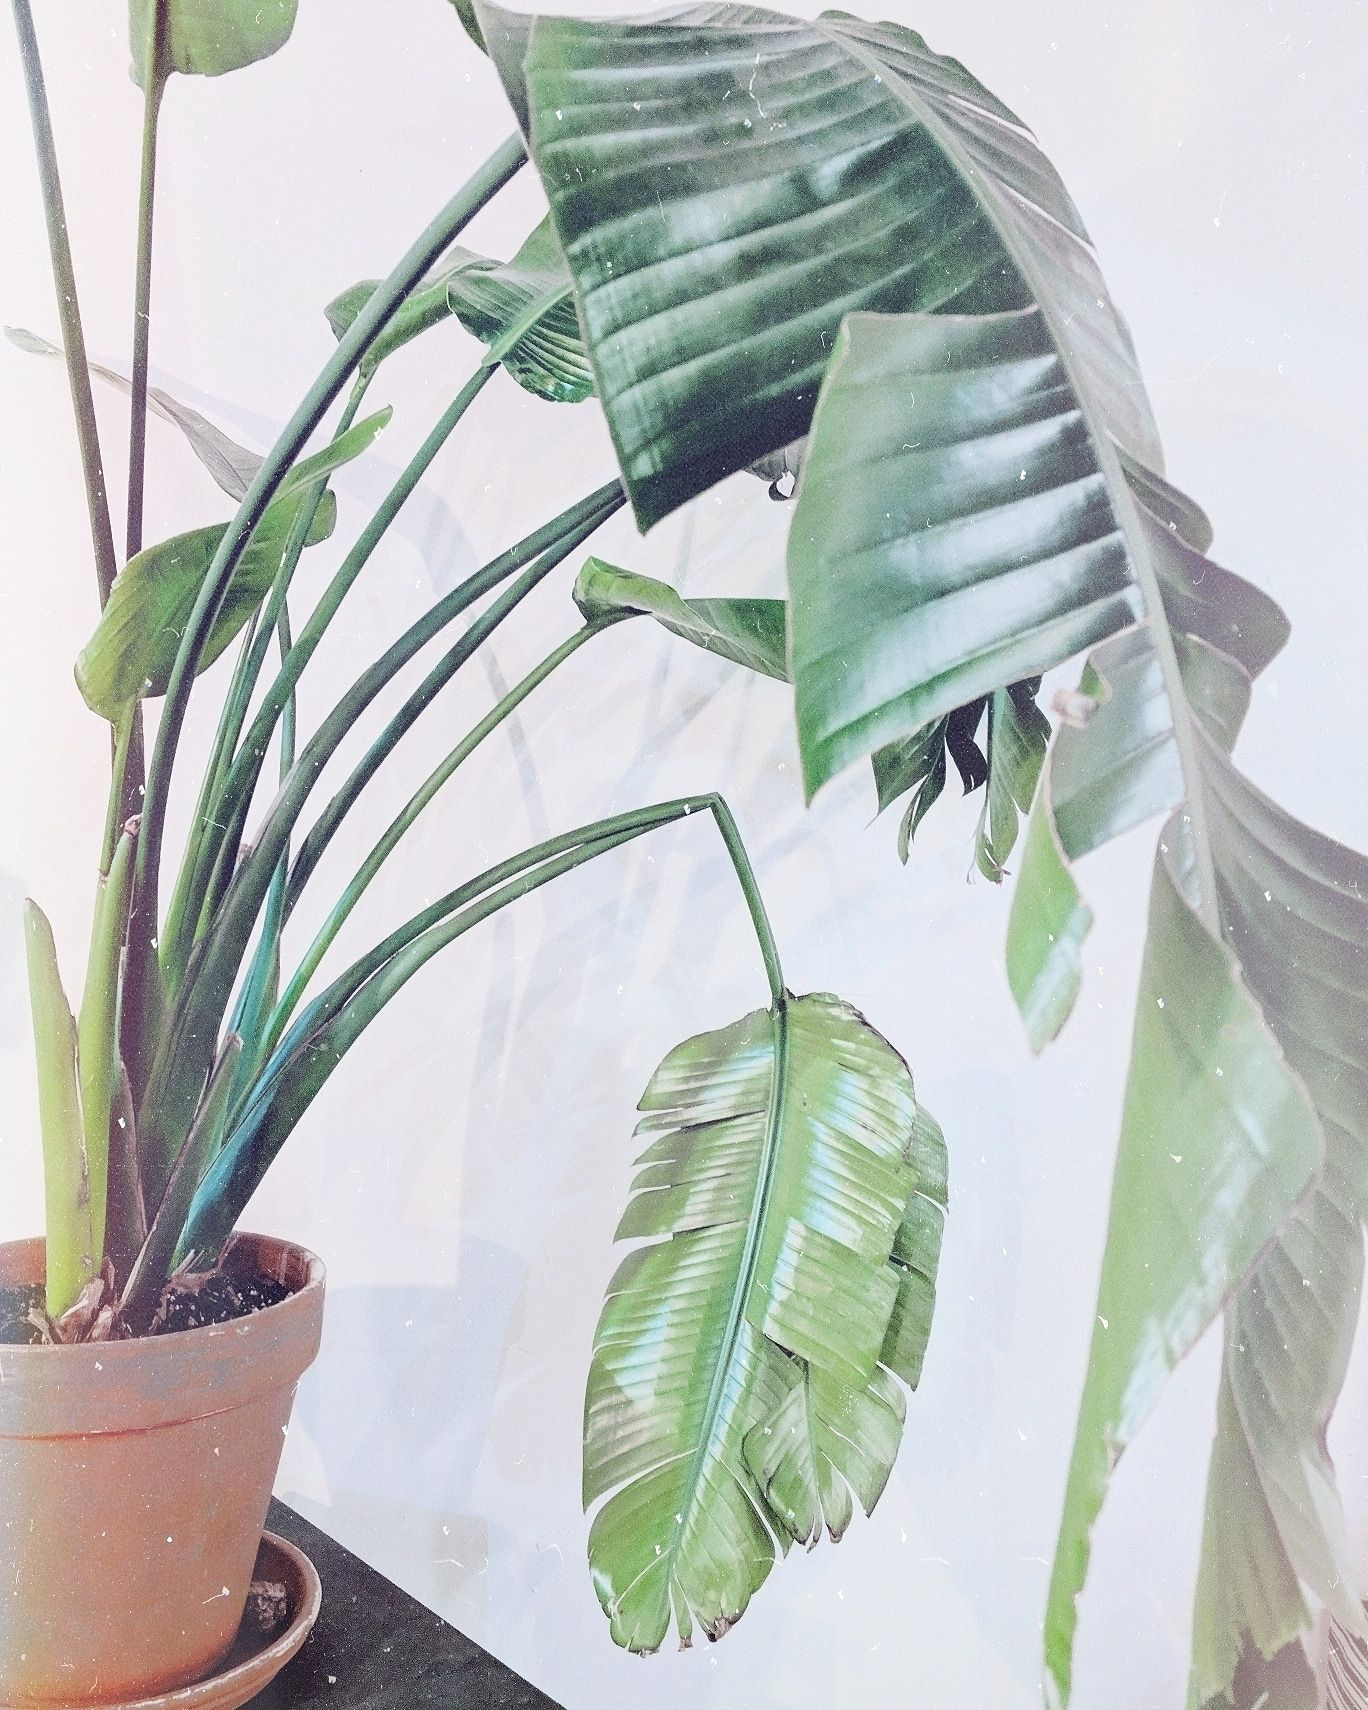 Large houseplant, indoorplants for open rooms #houseplants #plants on toys that open and close, weeds that open and close, succulents that open and close, flowers that open and close, windows that open and close,